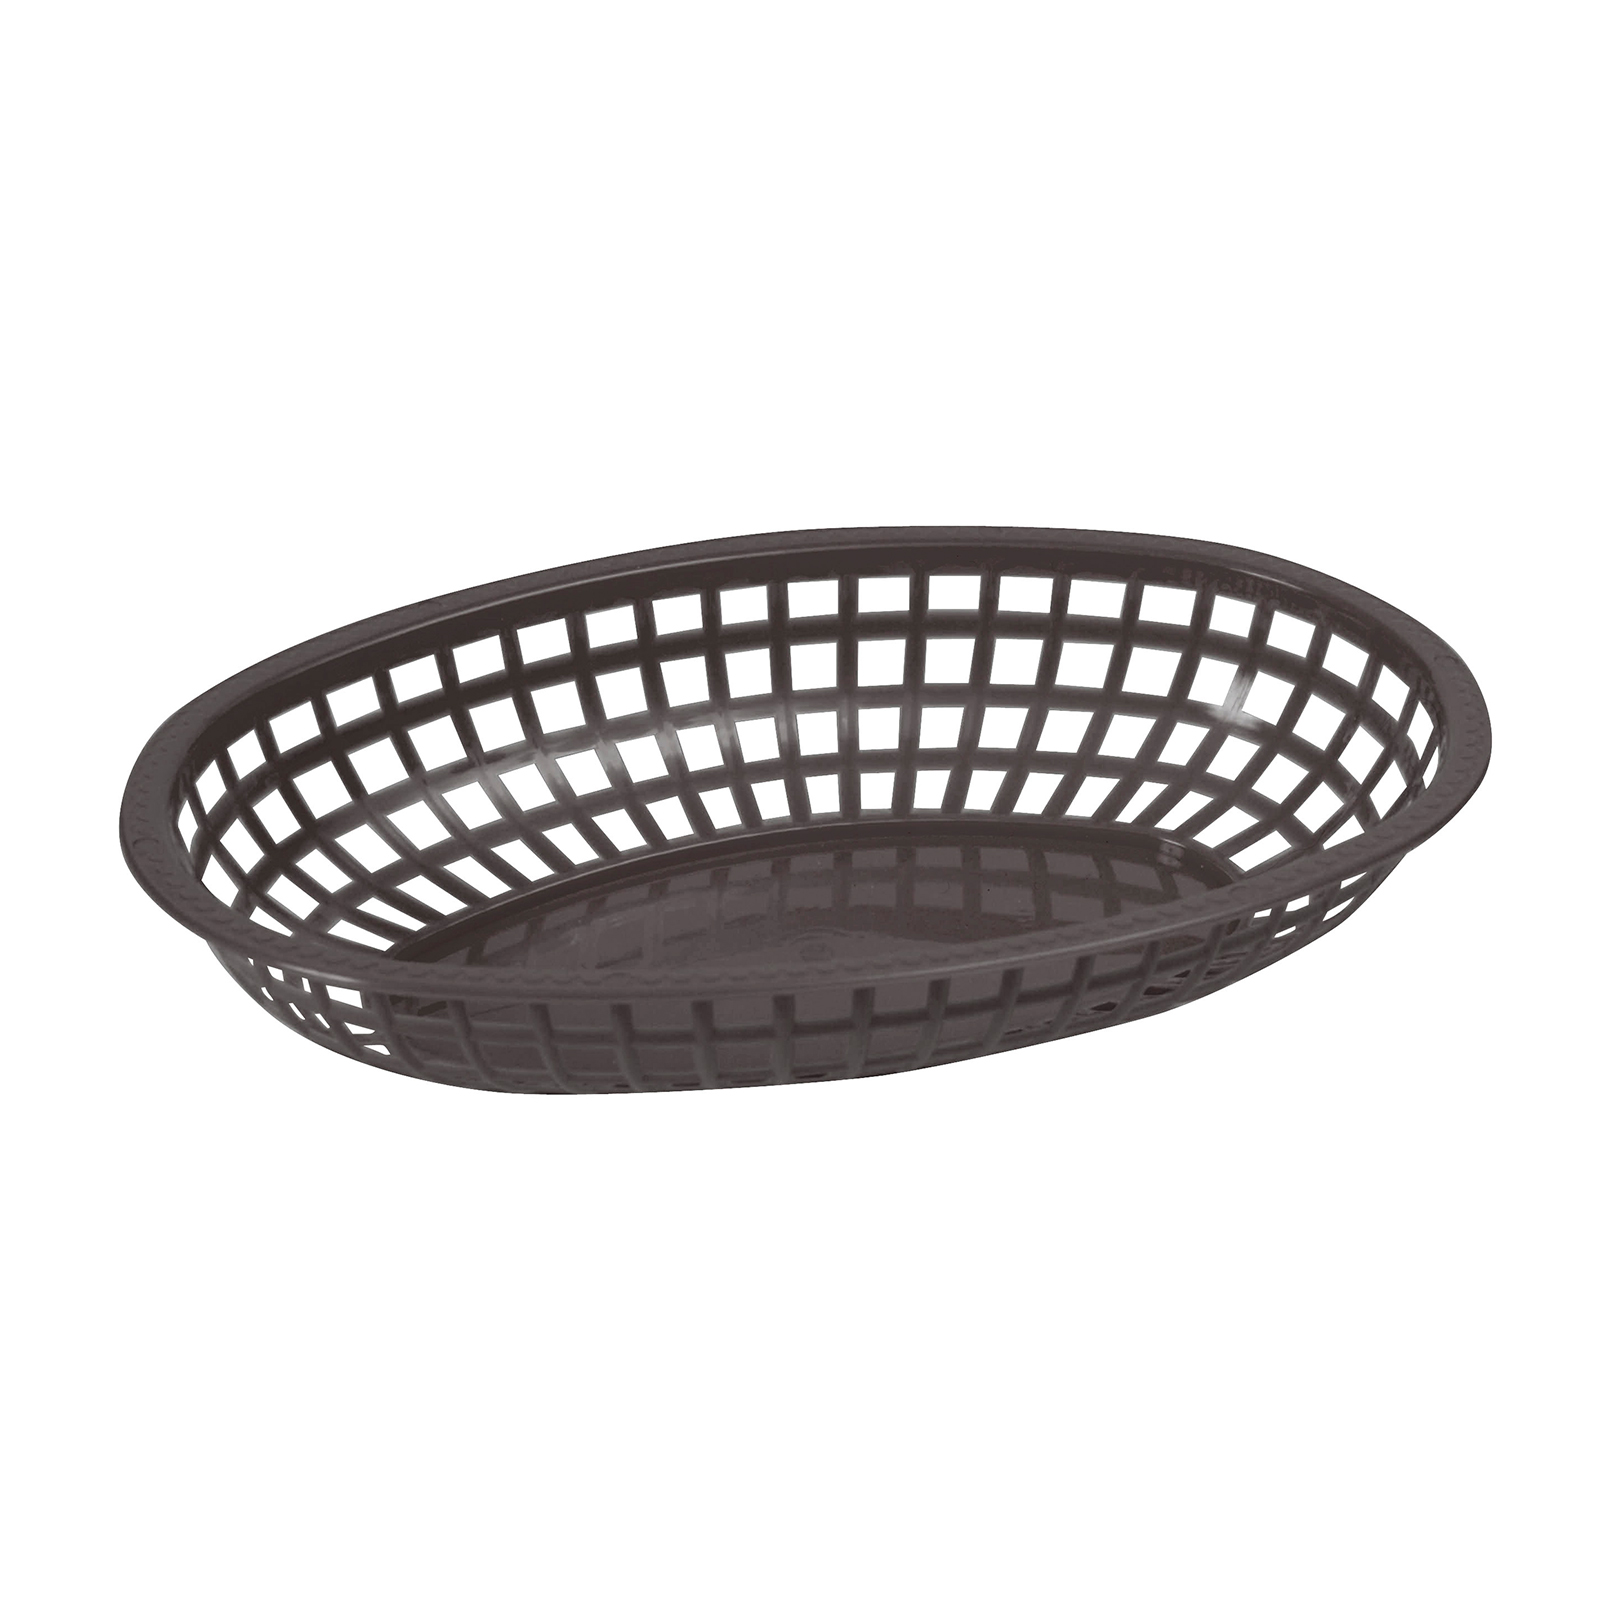 Winco POB-K basket, fast food